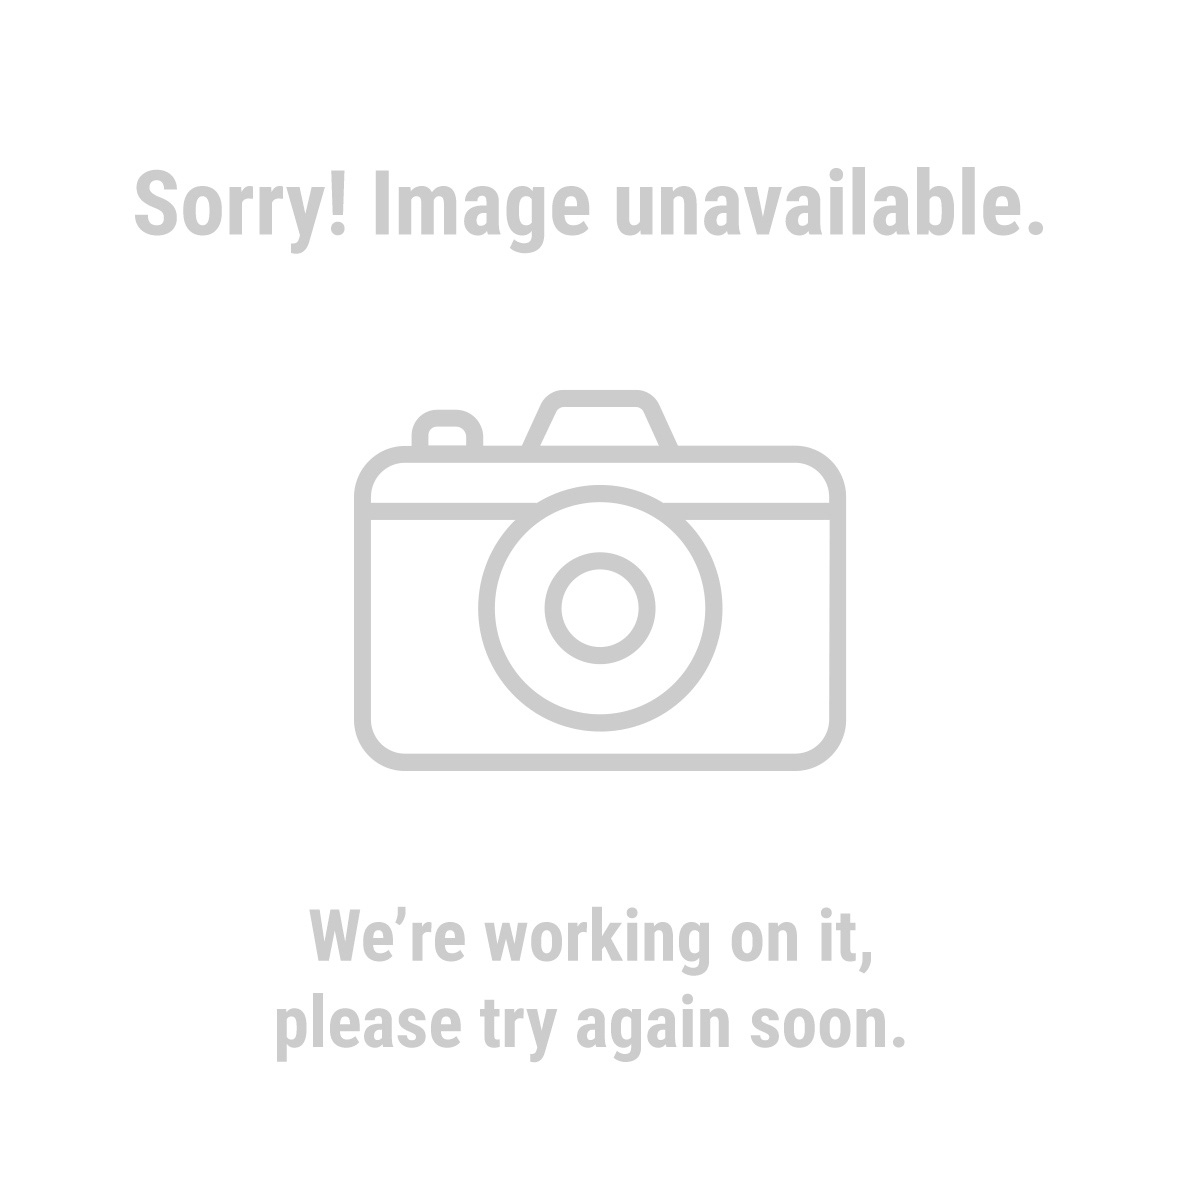 Pittsburgh Motorcycle 60636 1500 Lb. Lightweight Aluminum Motorcycle Lift